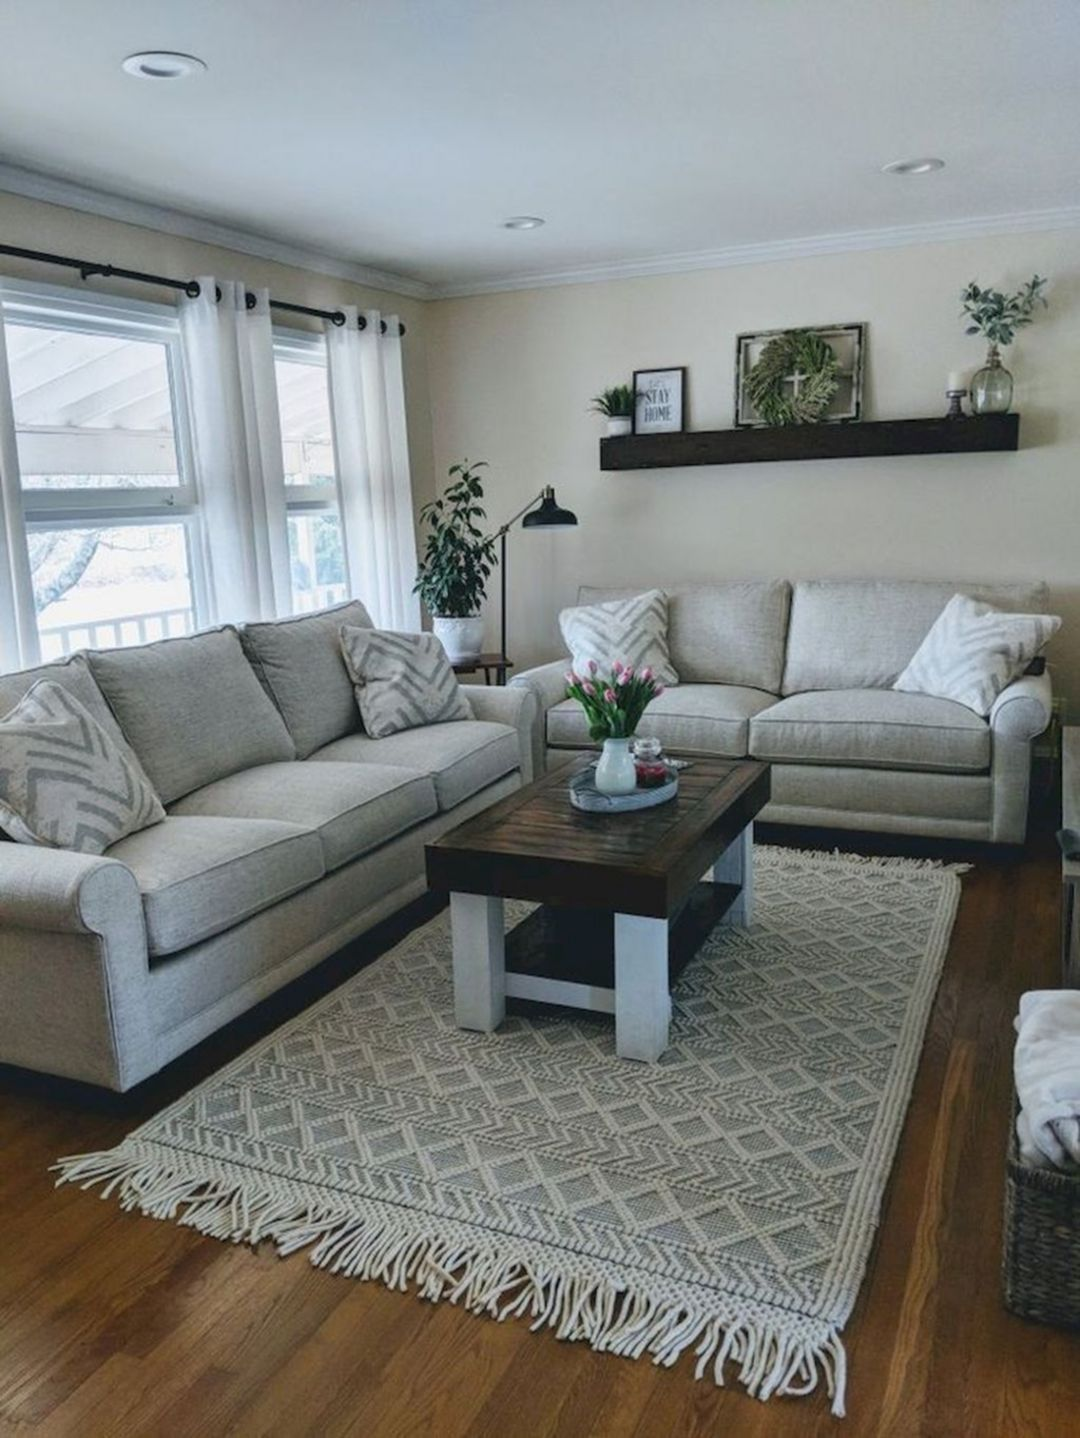 15 Best Decor Ideas For Your Small Living Room Apartment ... on Best Sconces For Living Rooms Near Me id=54035